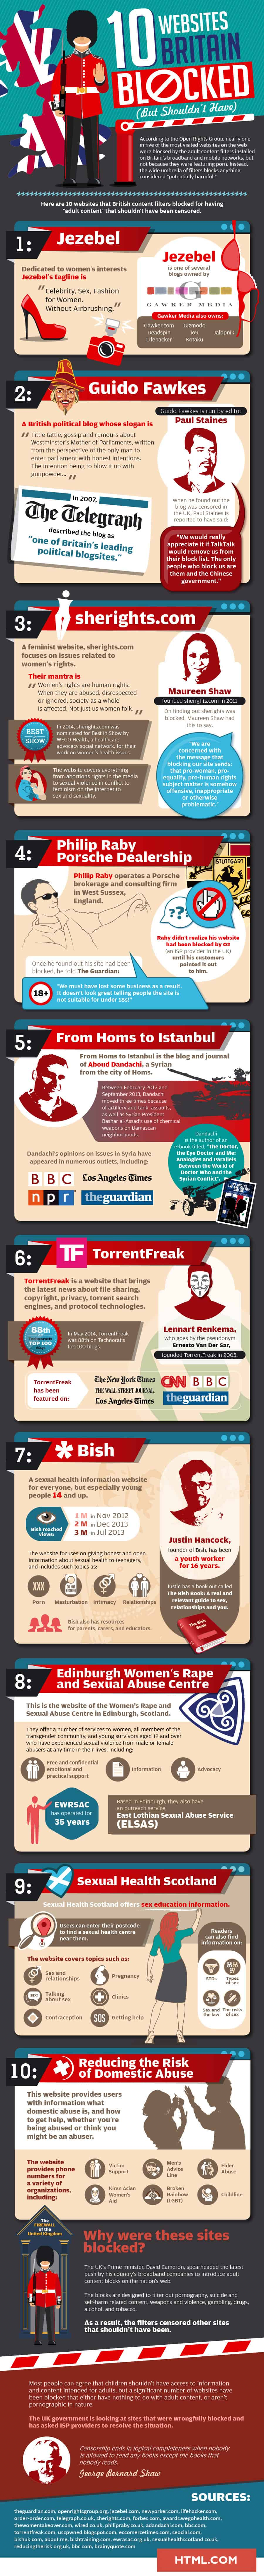 10 Websites Britain Blocked infographic